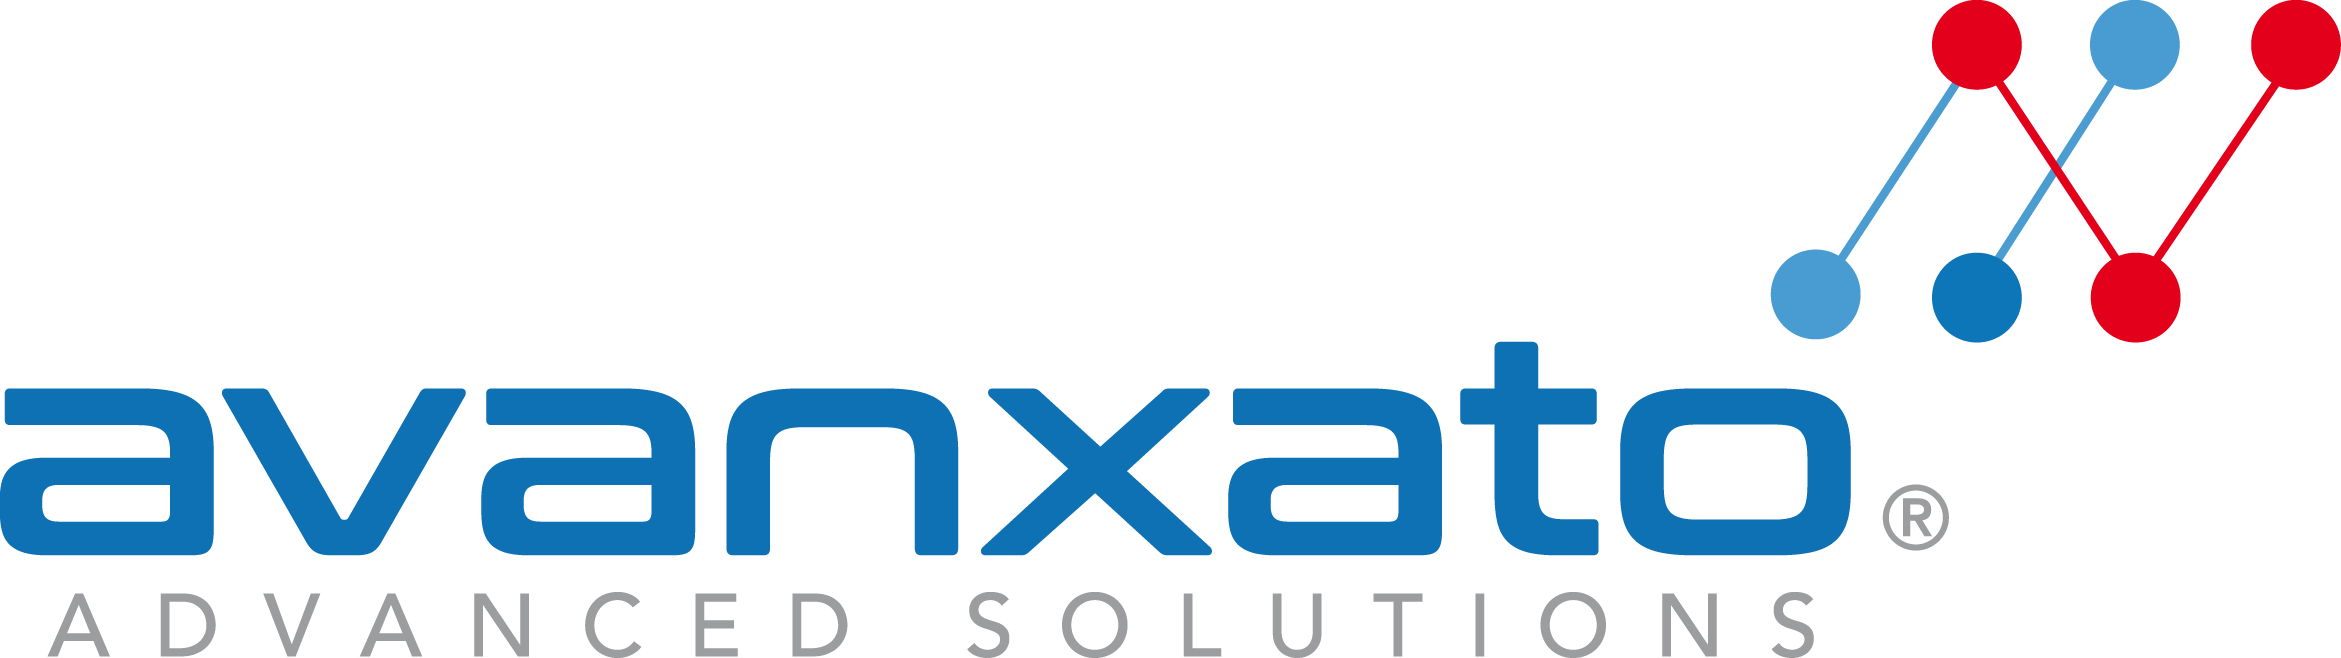 avanxato – Advanced solutions